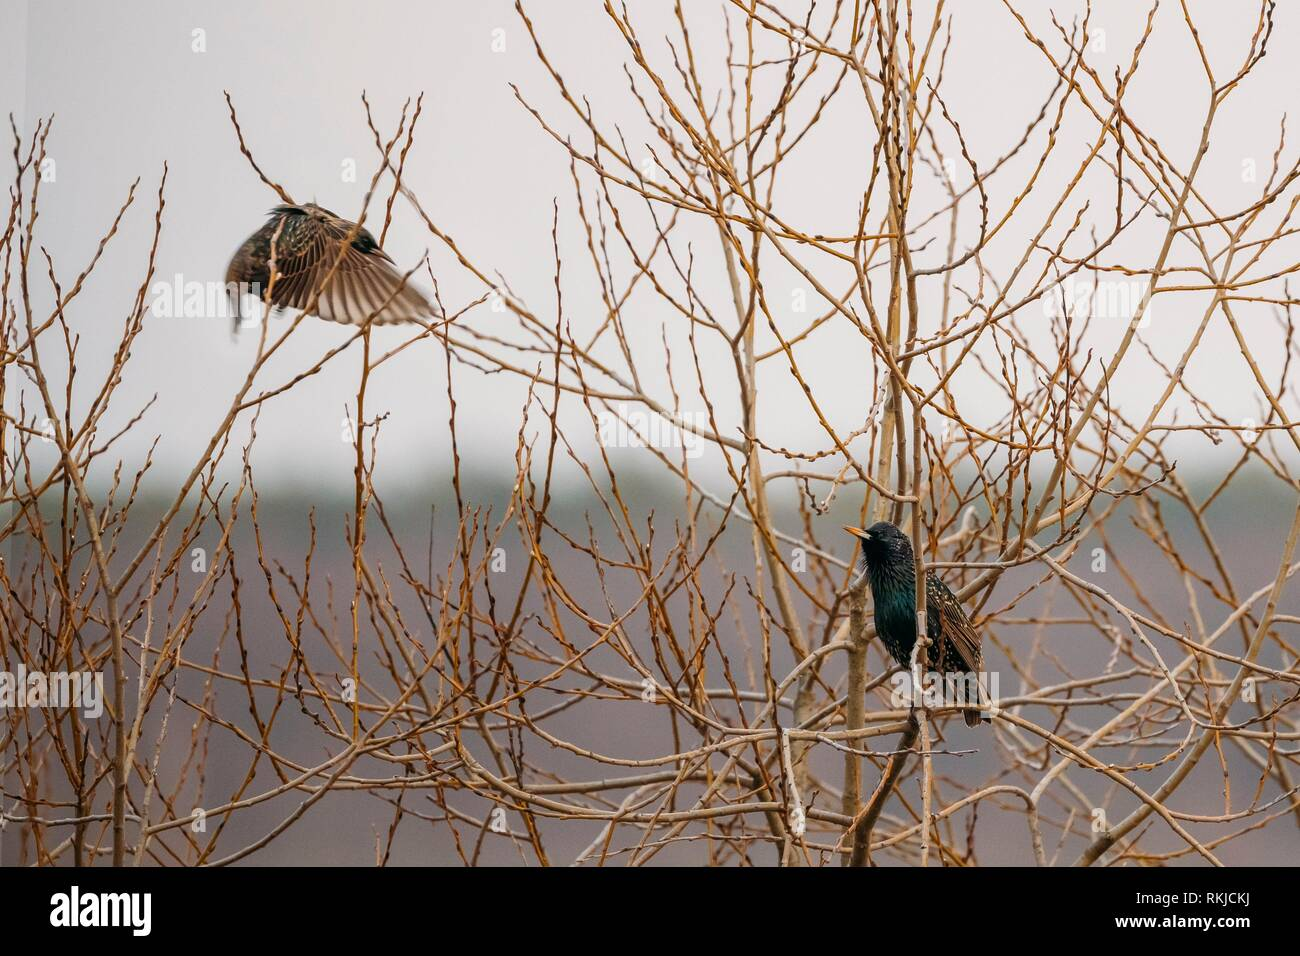 Two Wild Forest Birds Common Starling Sitting In Branch Tree In Spring Season. Belarus, Belarusian Nature, Wildlife. - Stock Image